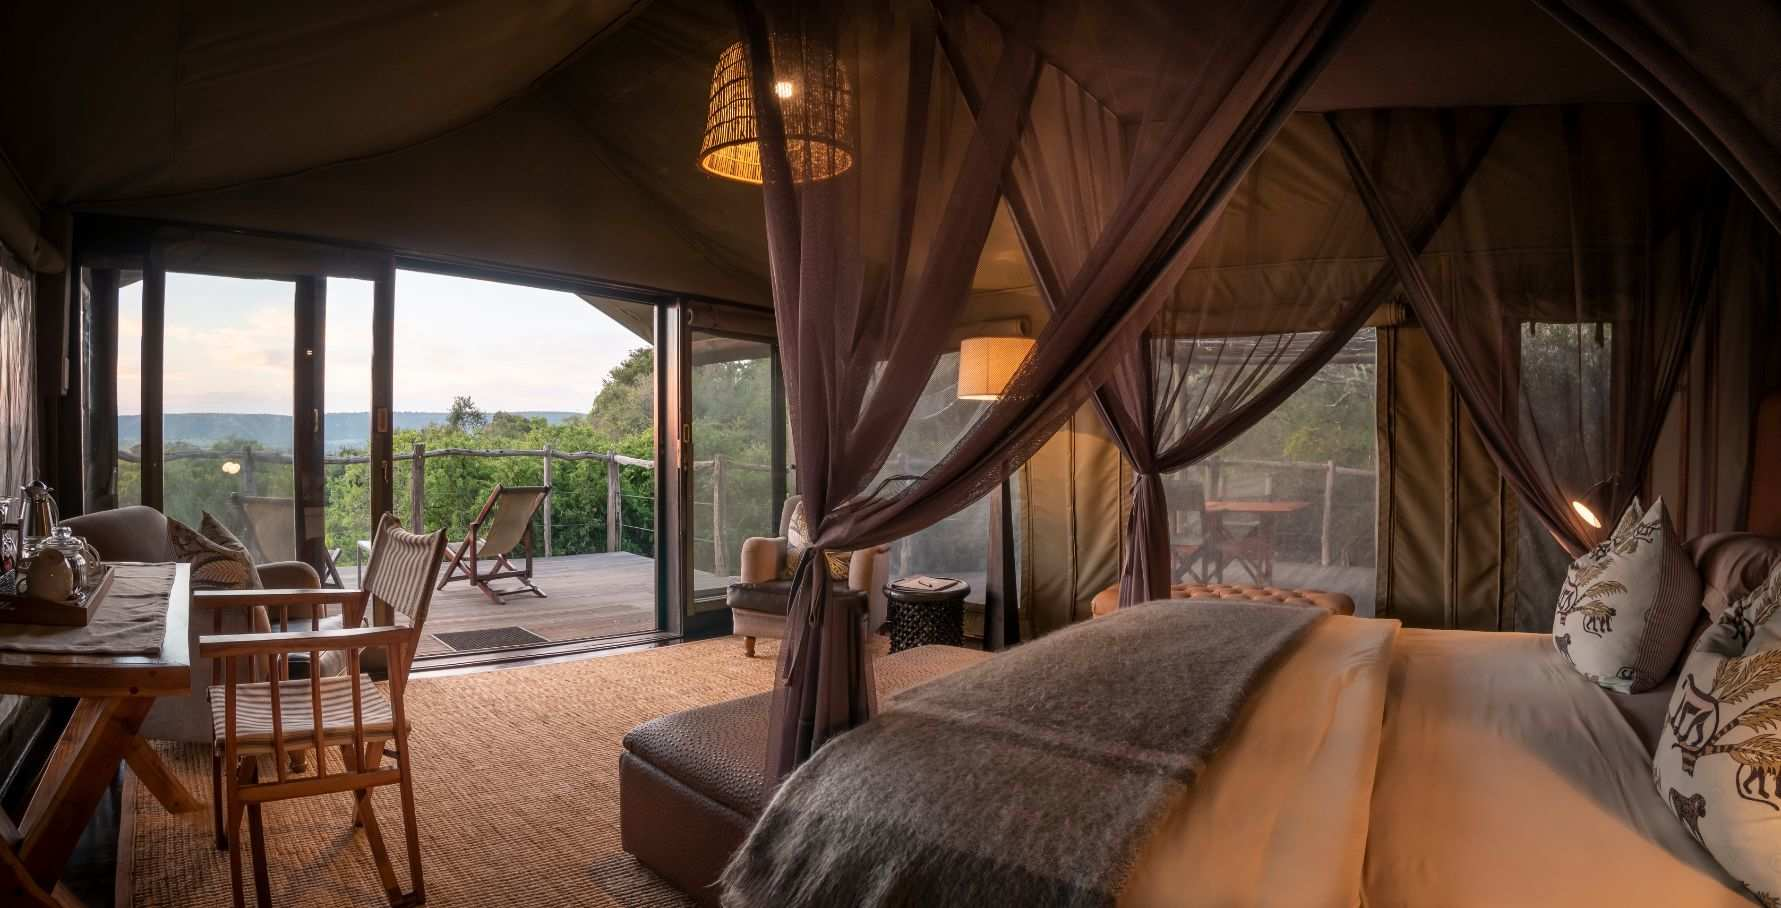 Amakhala Game Reserve Hillsnek Safari Camp Tent Interior